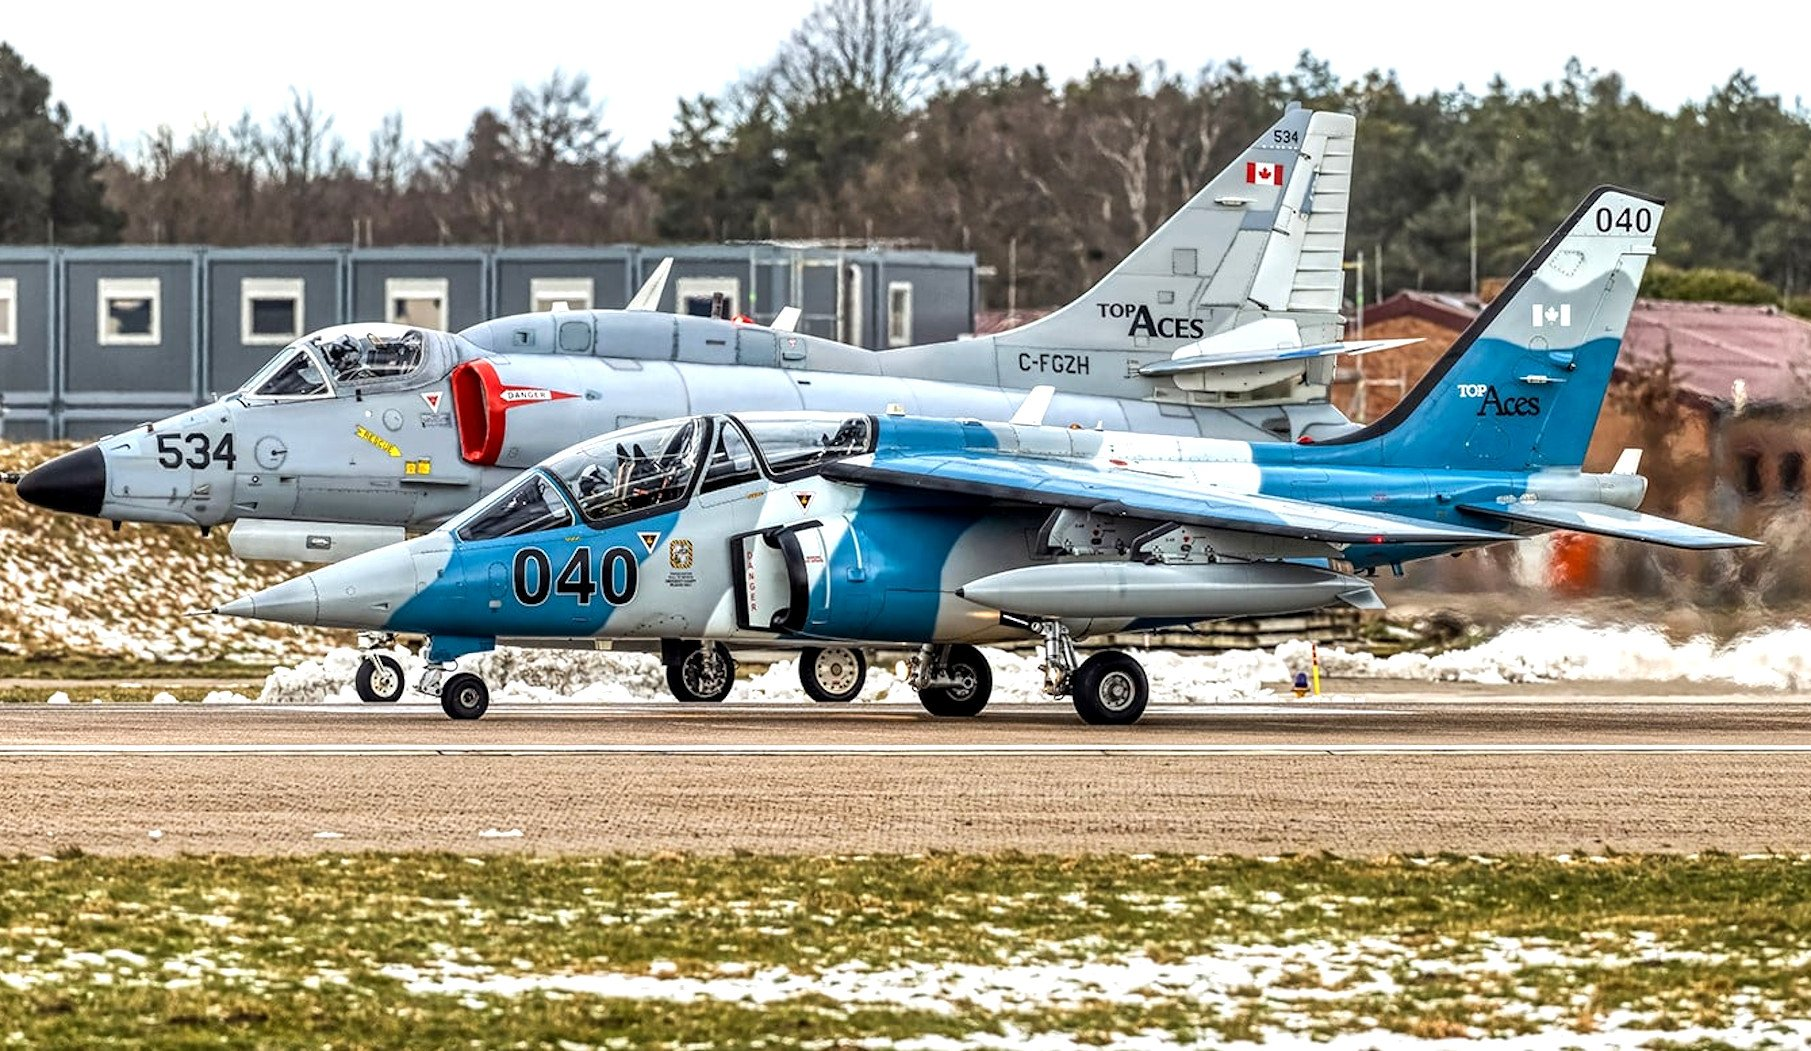 Top Aces Alpha Jet and A-4N Skyhawk [Top Aces]